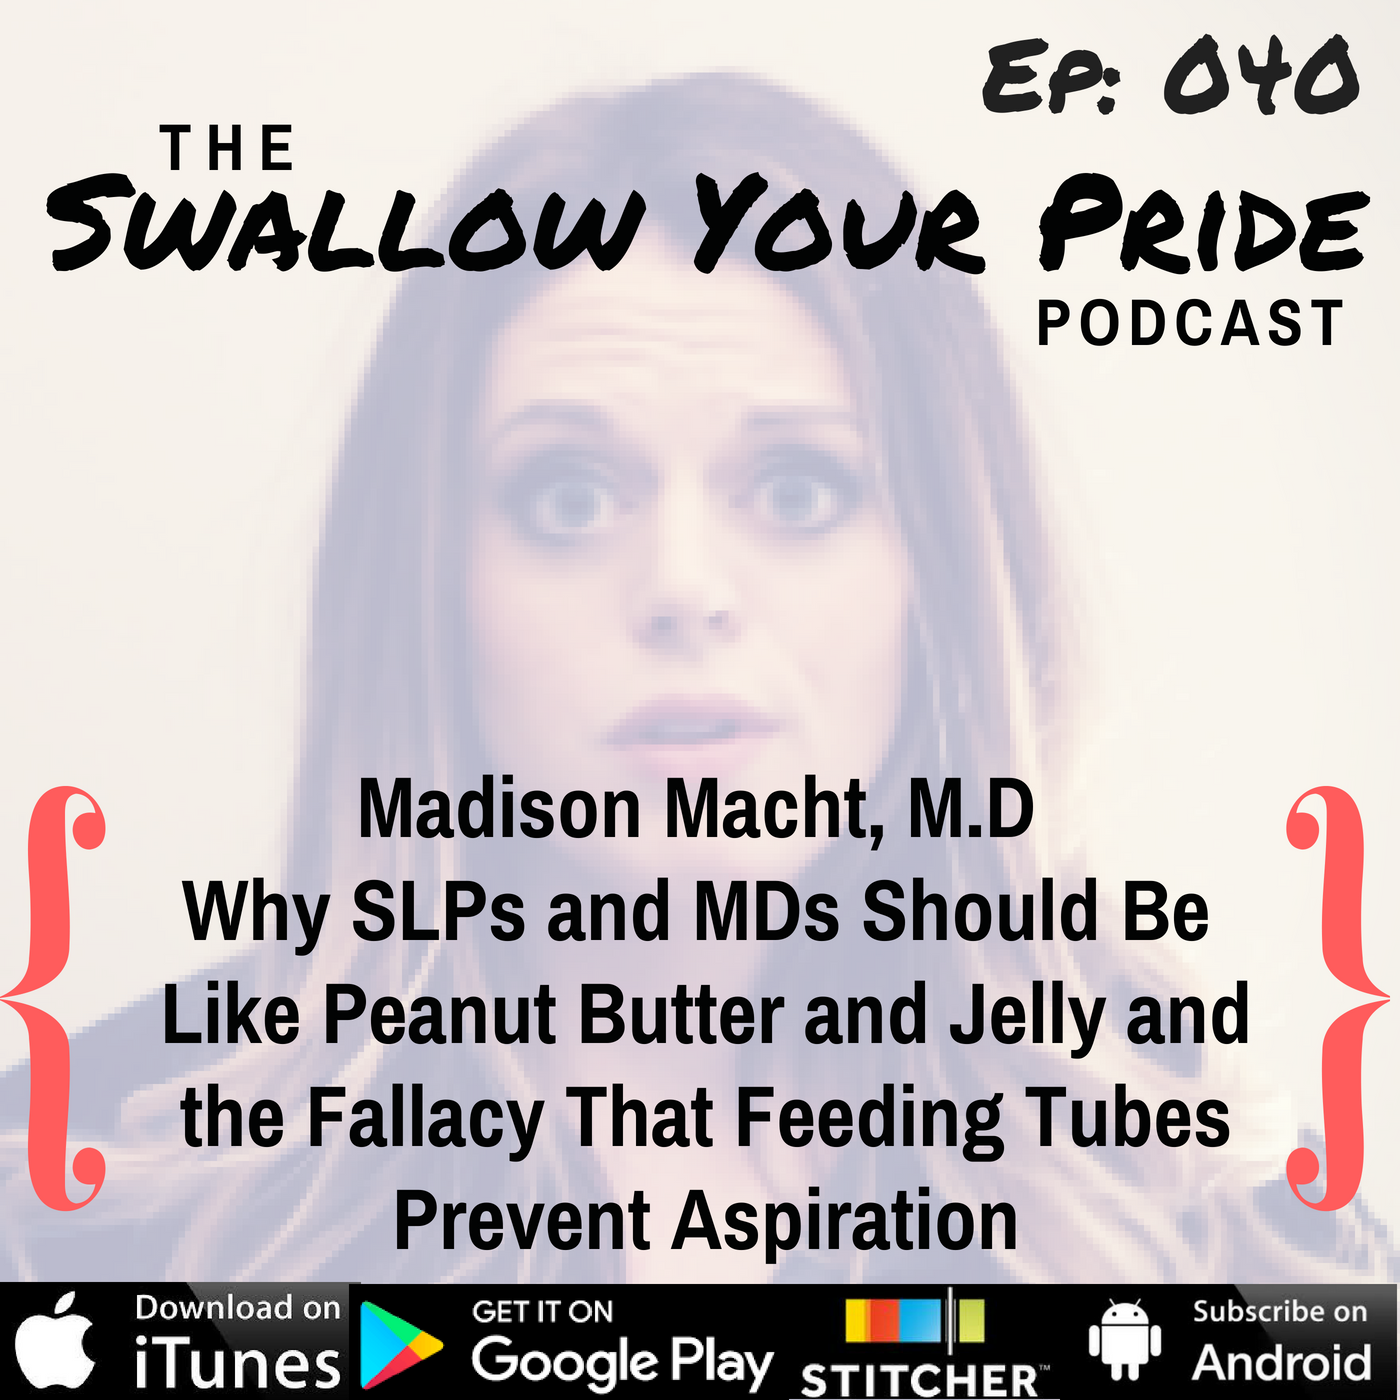 040 – Madison Macht, M.D – Why SLPs and MDs Should Be Like Peanut Butter and Jelly and the Fallacy That Feeding Tubes Prevent Aspiration